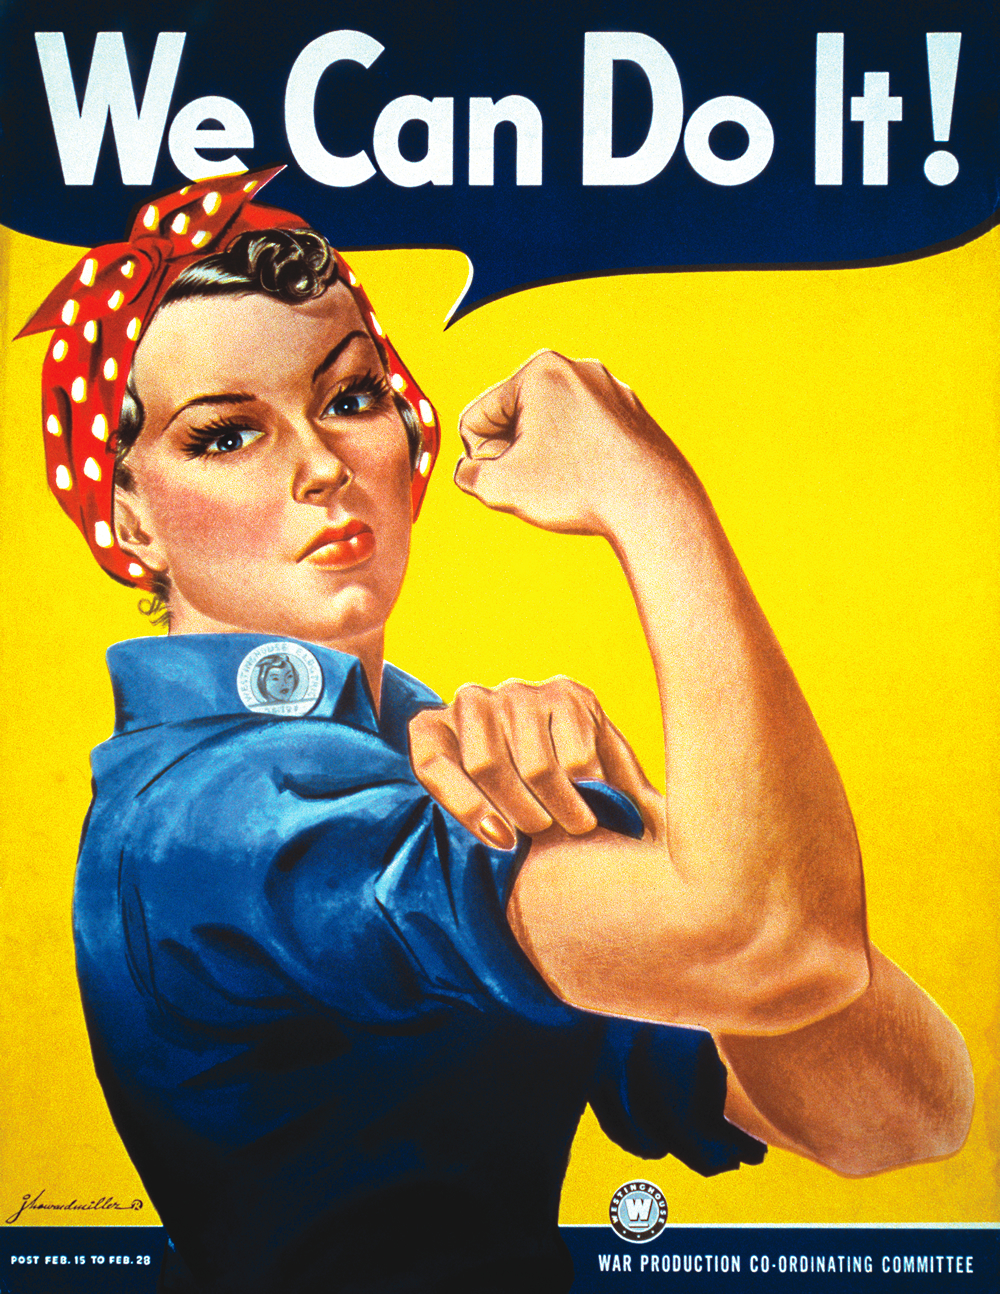 Rosie the Riveter pushing past stereotype barriers and bringing new ones to light. During WWII Rosie was a symbol of societal advancement surrounding stereotypes.